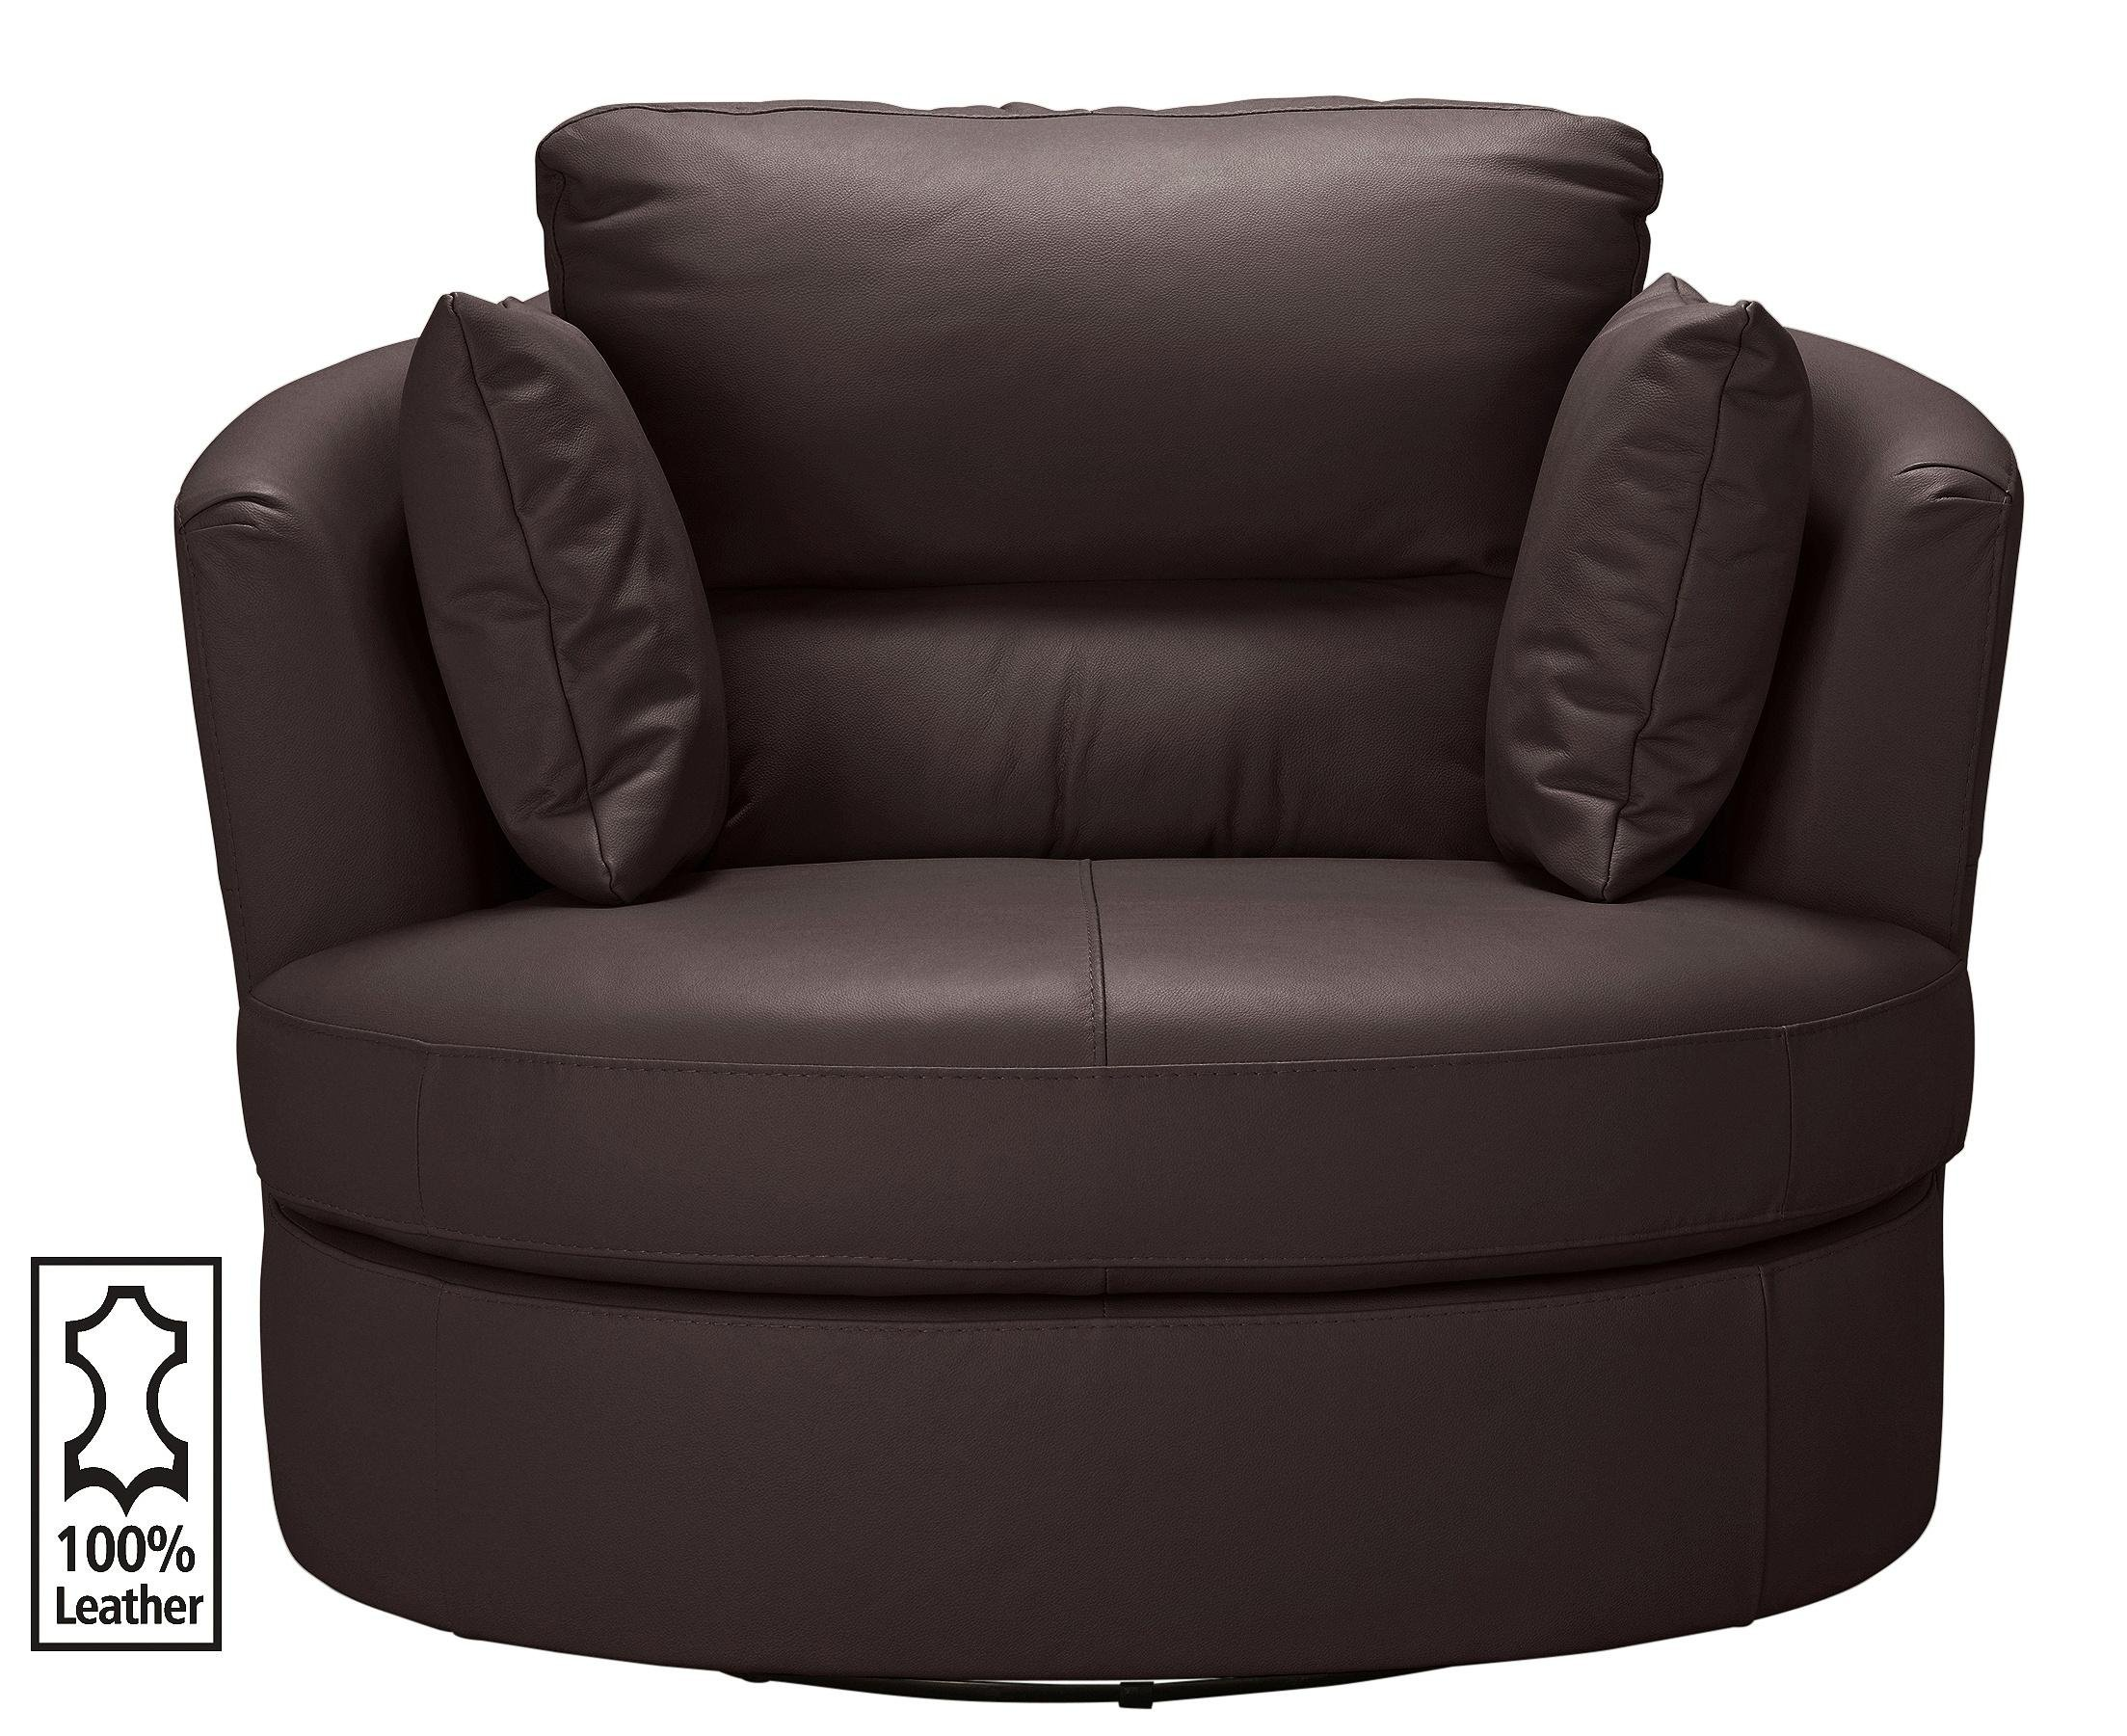 dark brown leather chair tied to results for armchair argos home trieste swivel